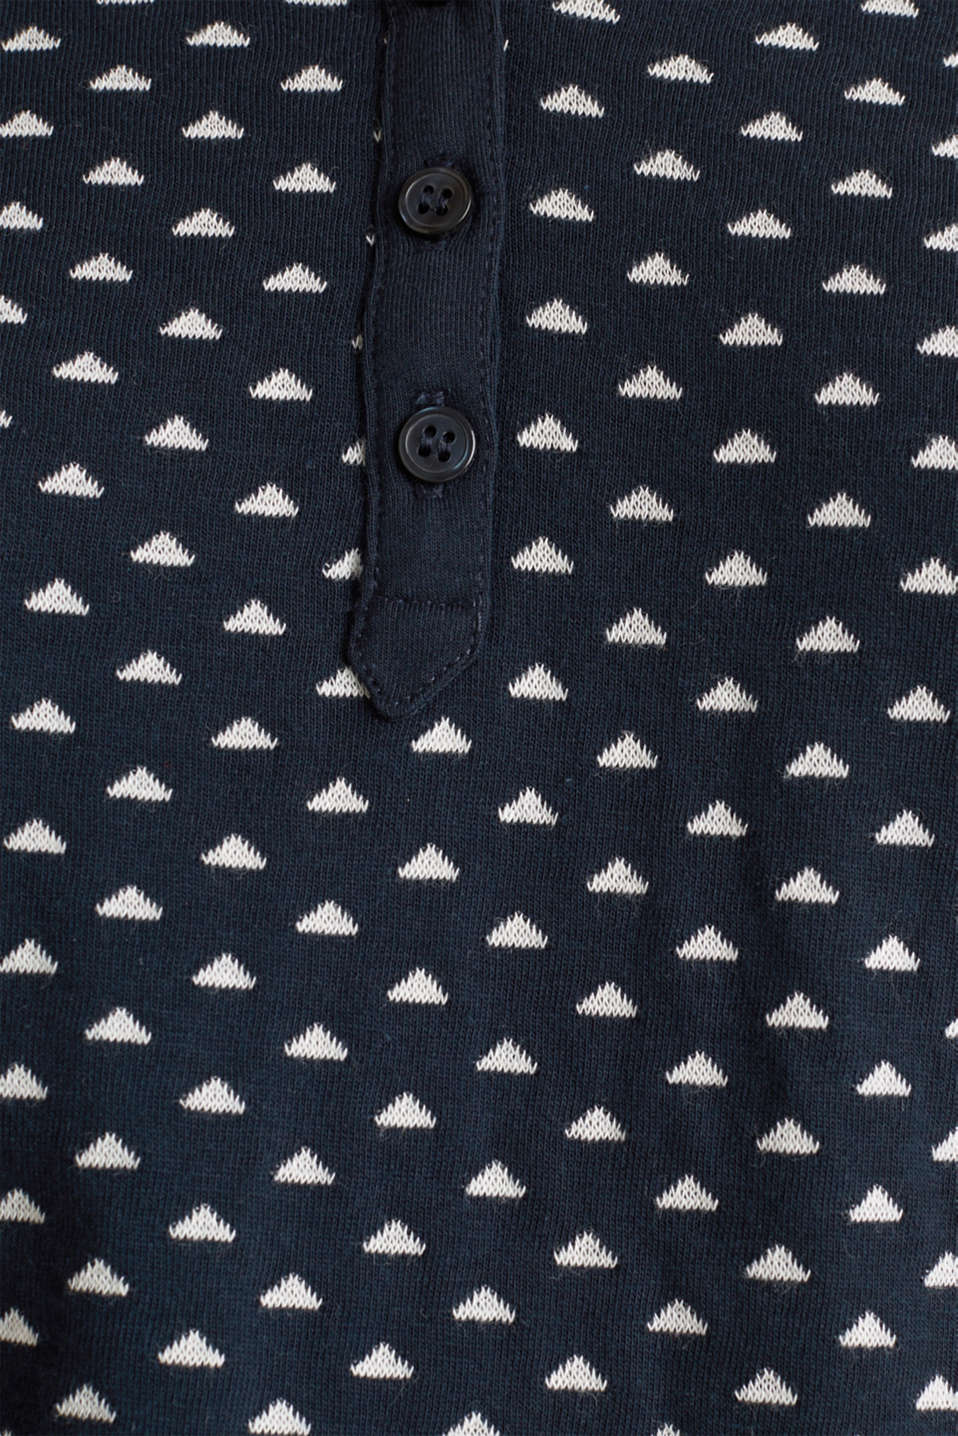 Double-faced jersey long sleeve top, 100% cotton, NAVY, detail image number 4